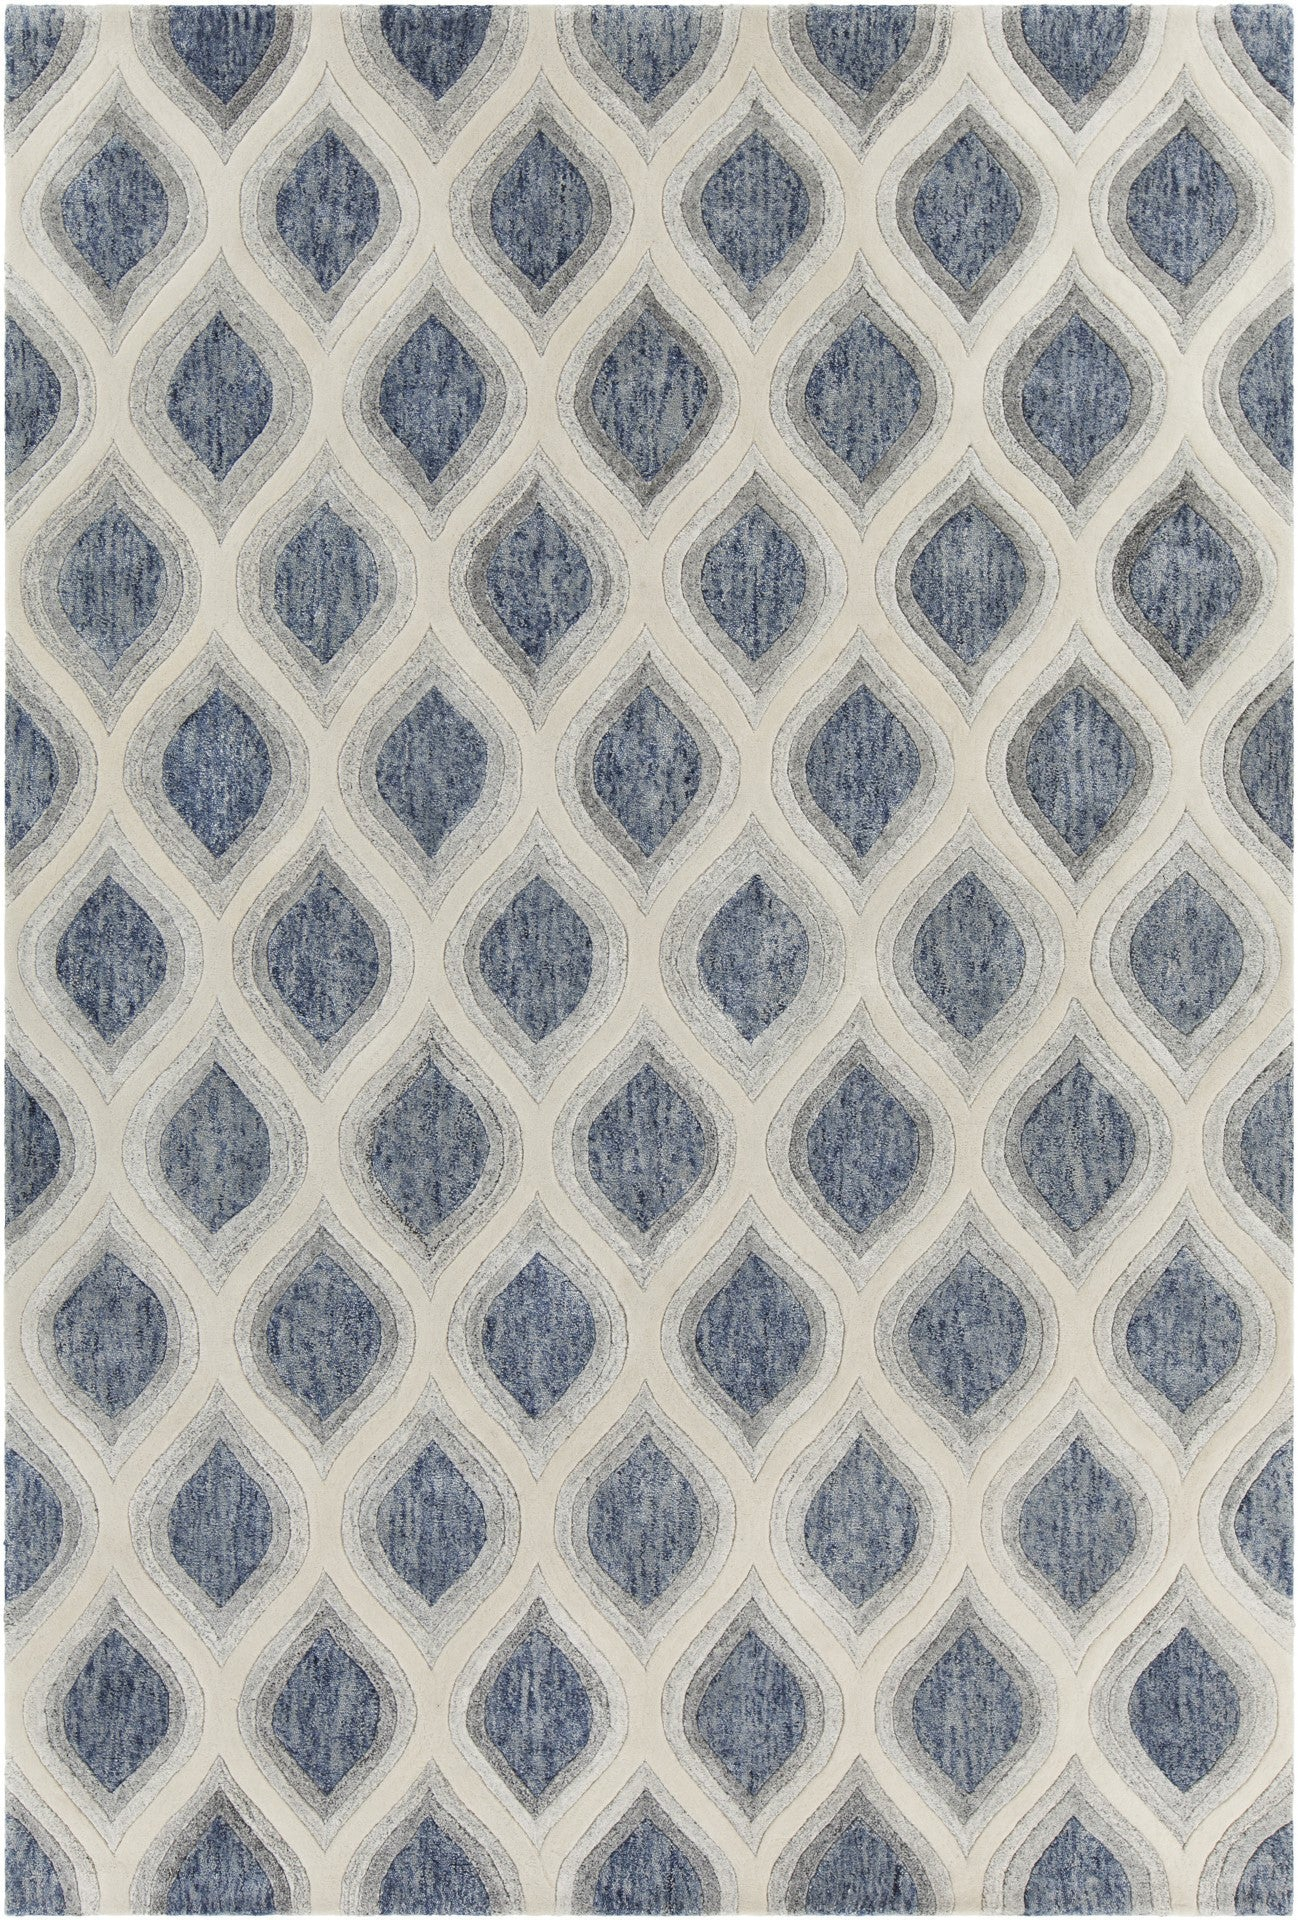 Clara Collection Hand Tufted Area Rug In Blue, Grey, U0026 White Design By  Chandra Rugs